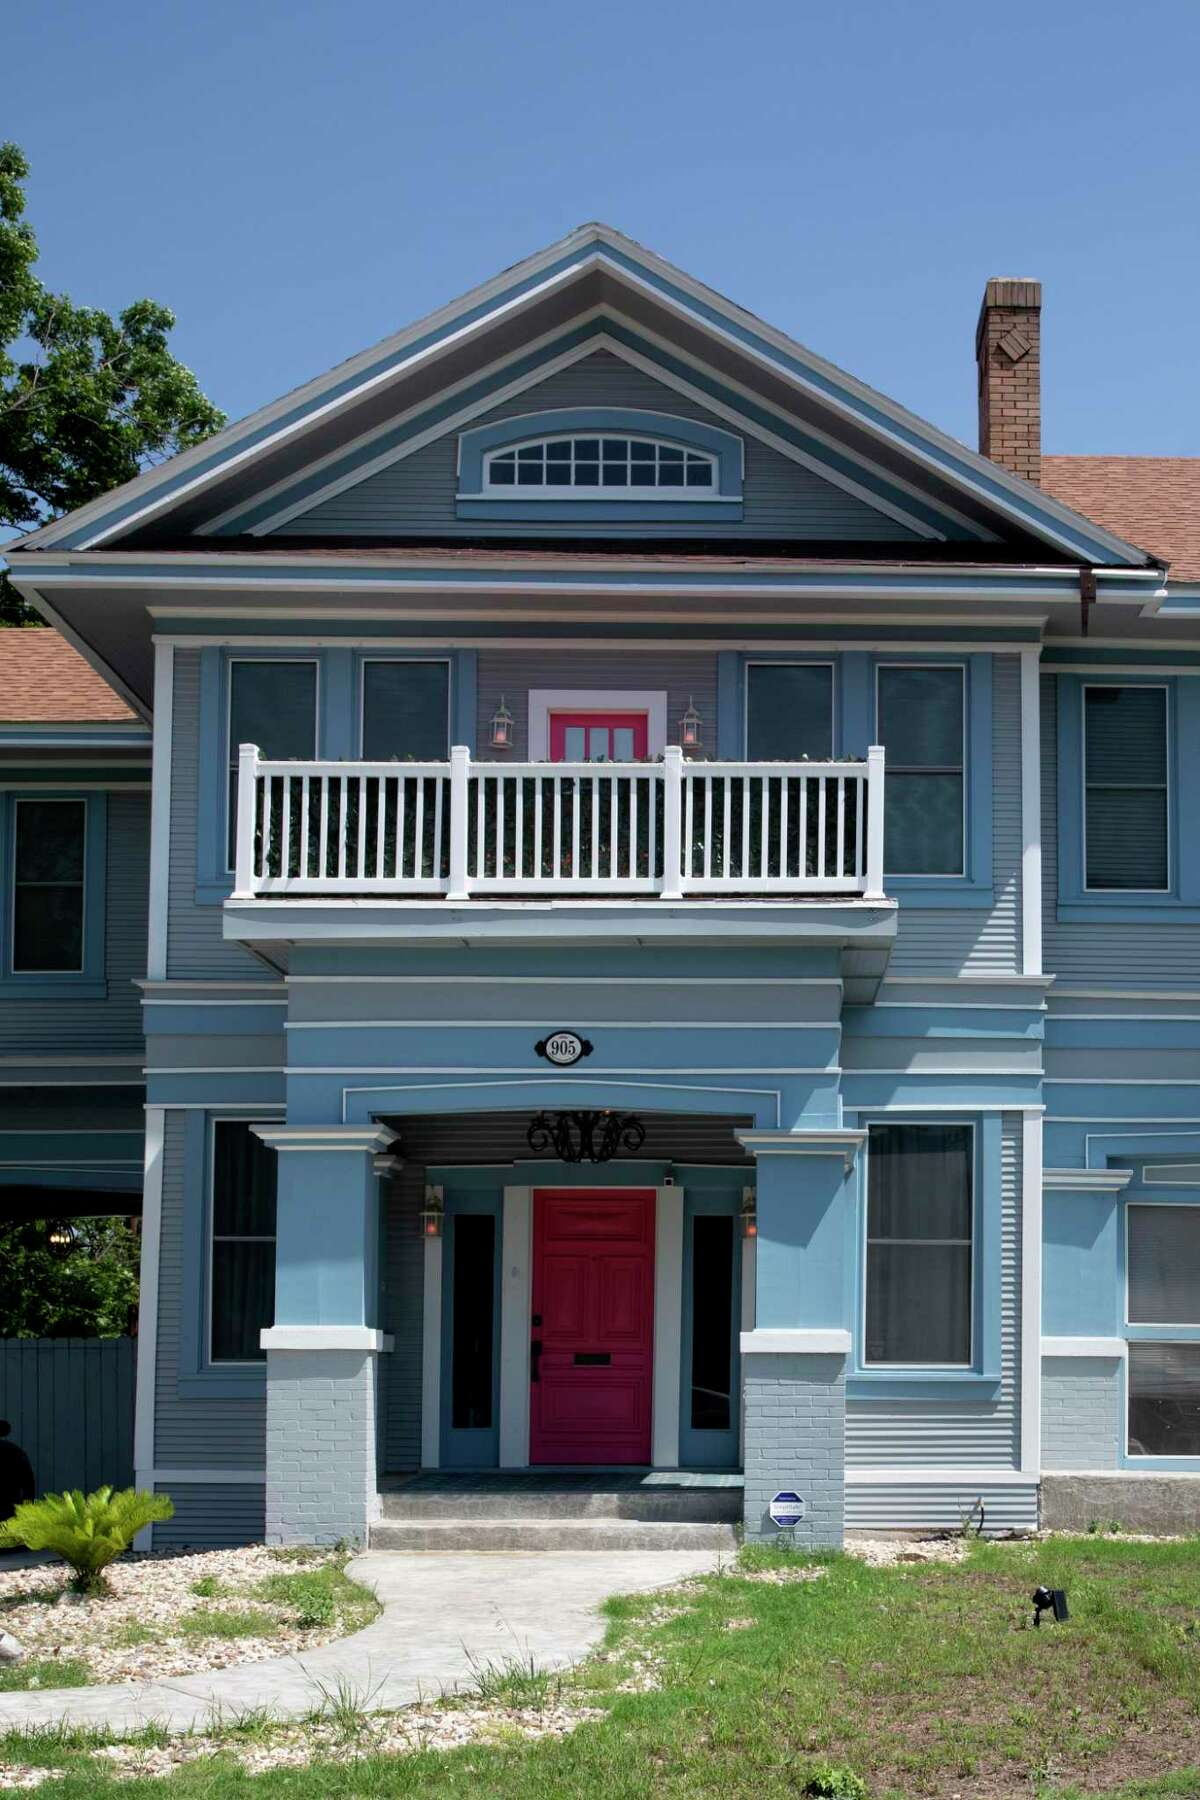 The exterior of the Beacon Hills home that has been remodeled by the current owners.